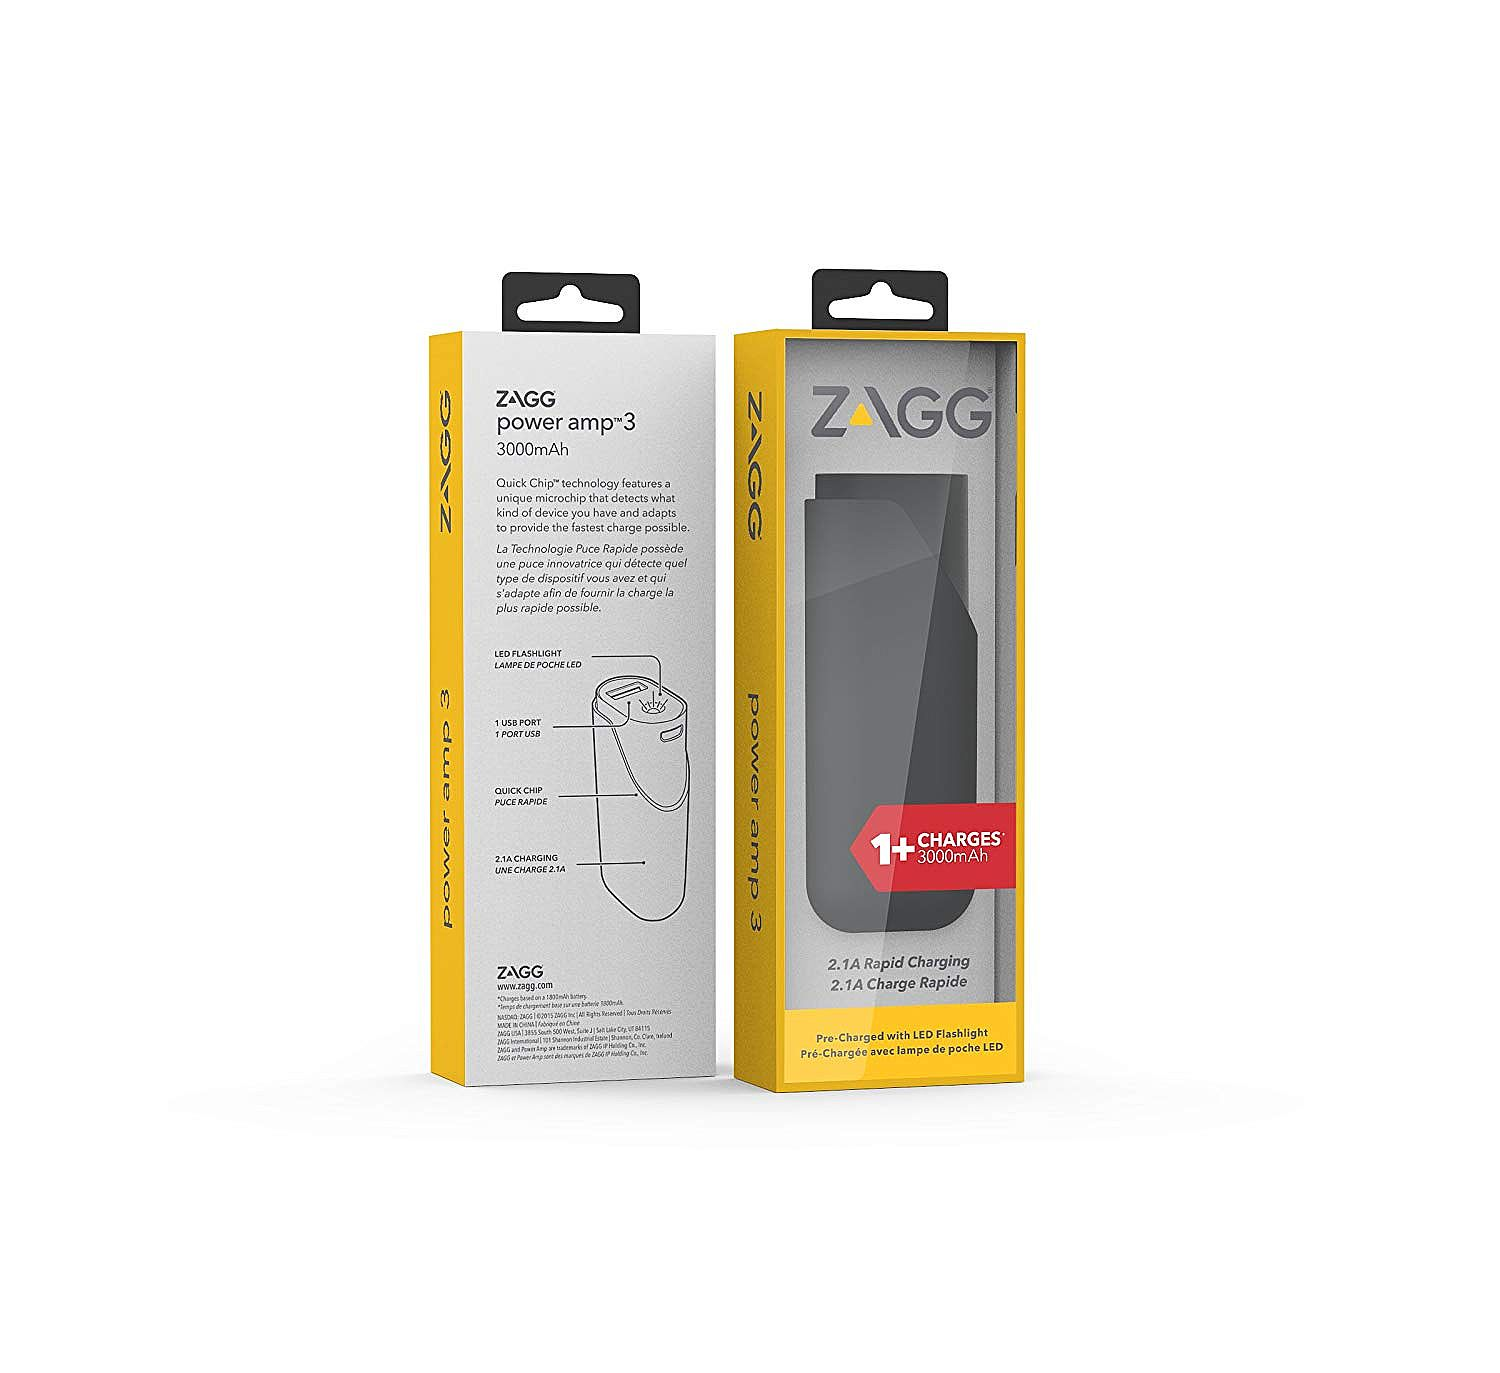 ZAGG Power Amp 3 Universal Battery Charger for Smartphones